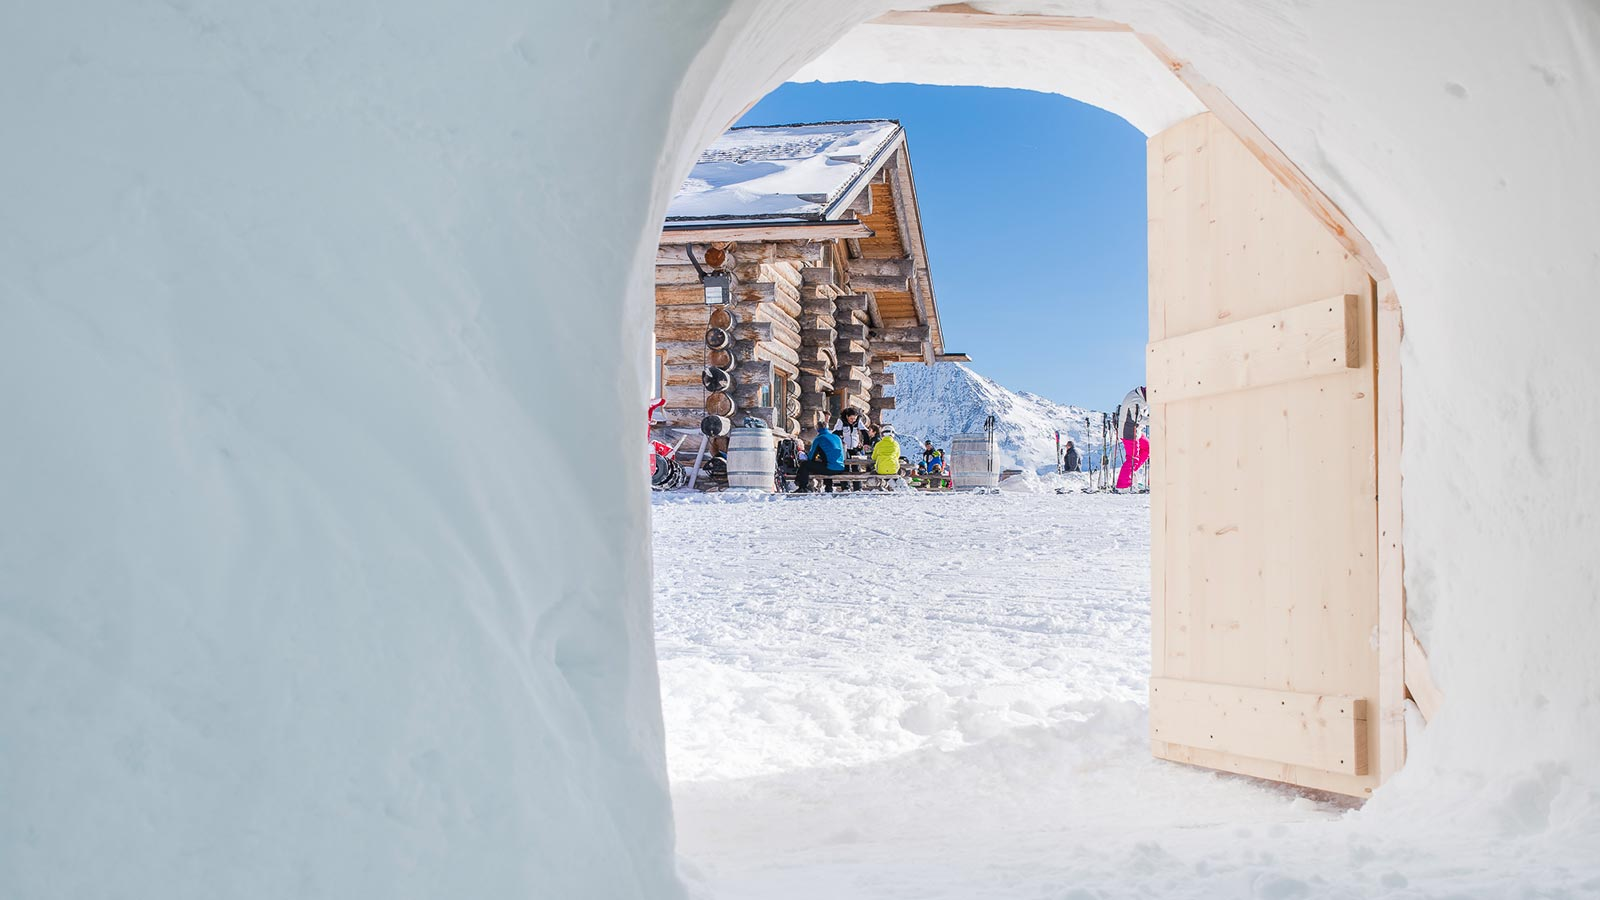 Scorcio da un turista che ha scelto di godersi l'after ski in un igloo